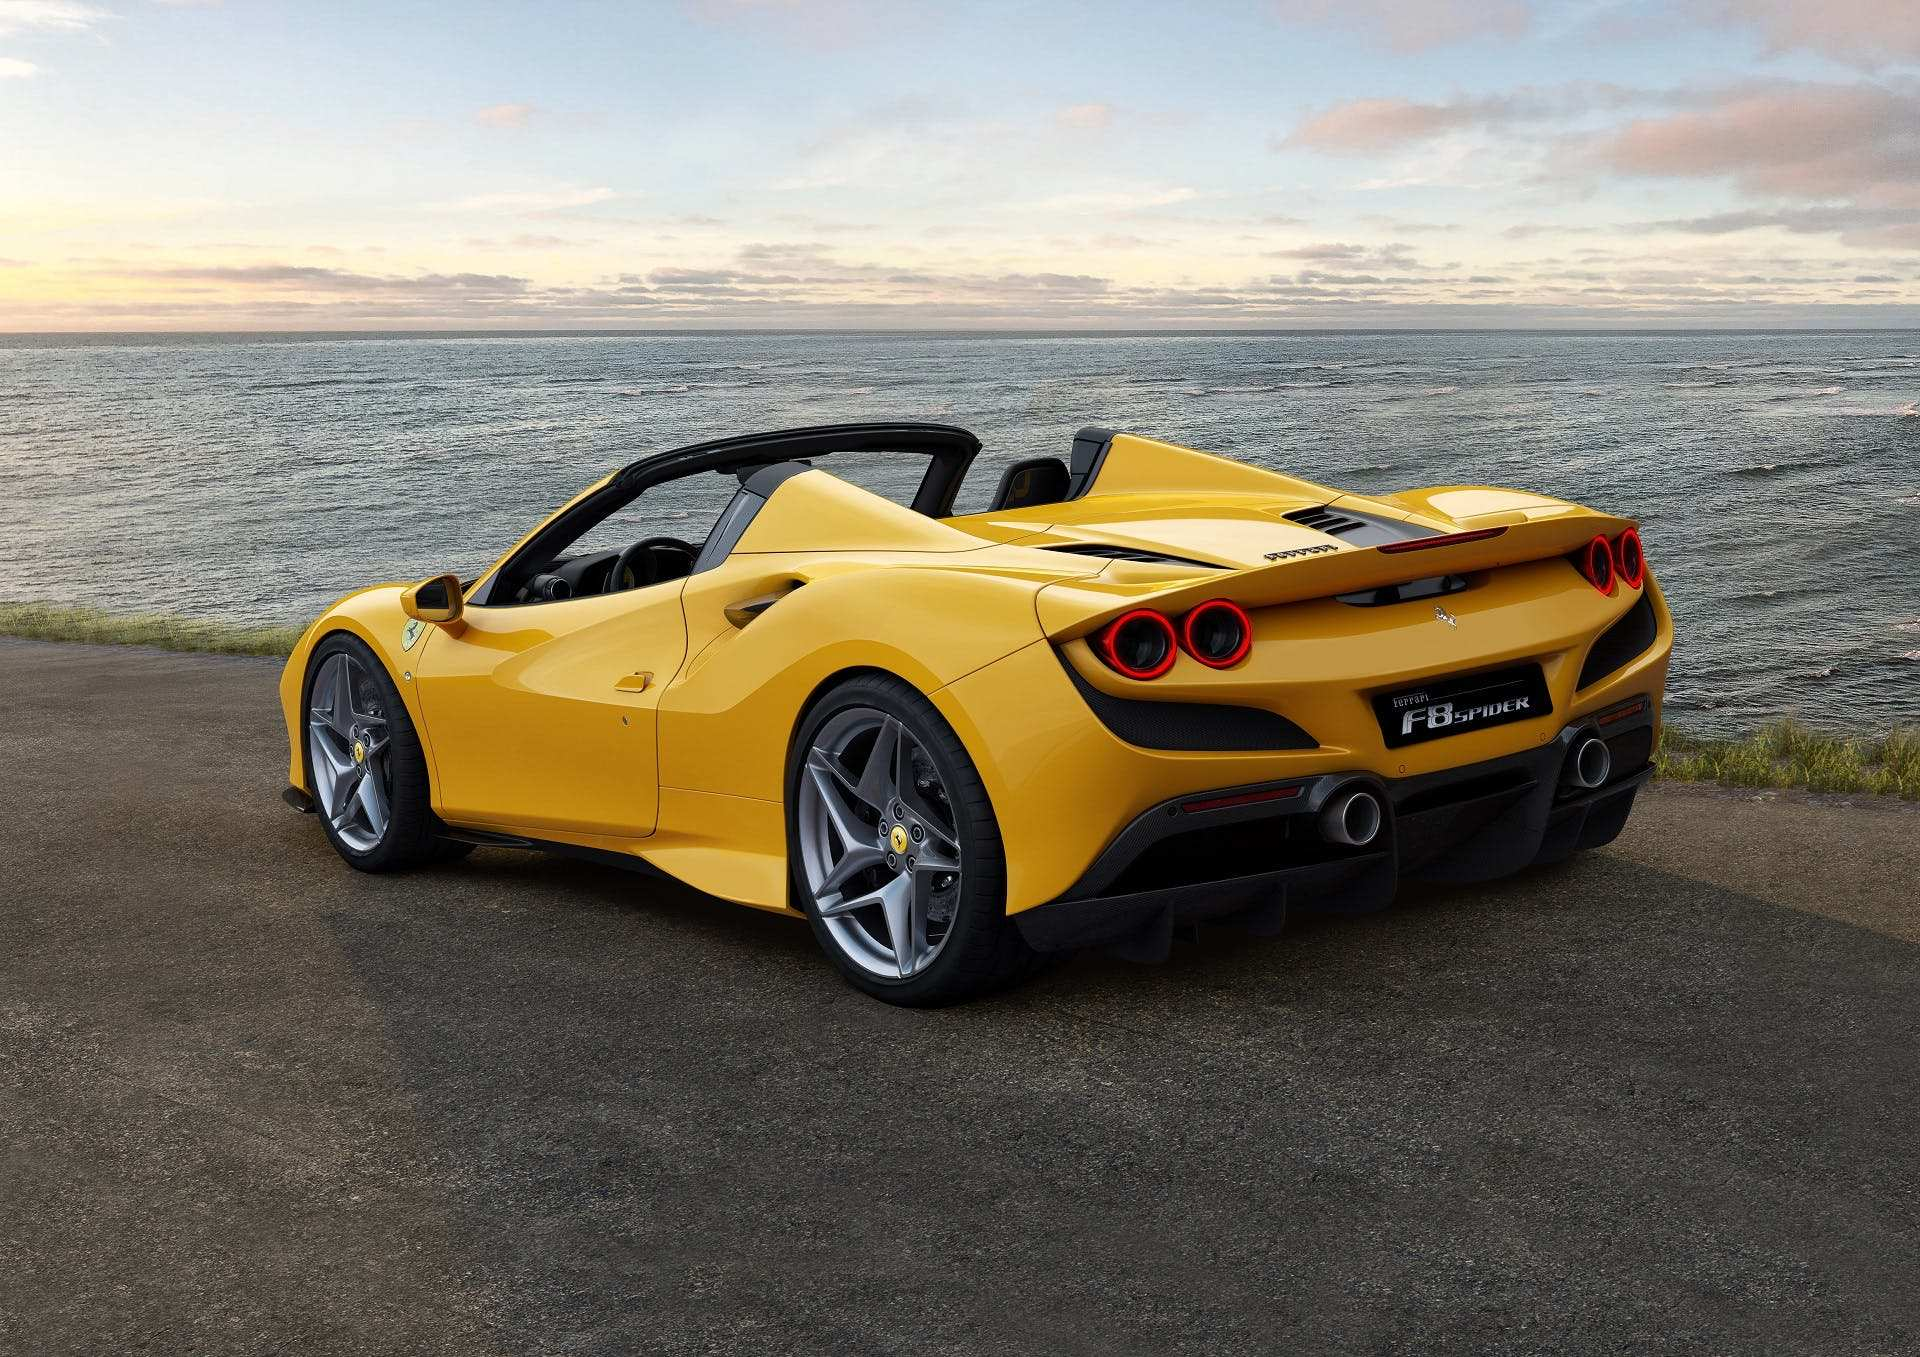 98 Best Review Ferrari D 2020 Picture for Ferrari D 2020